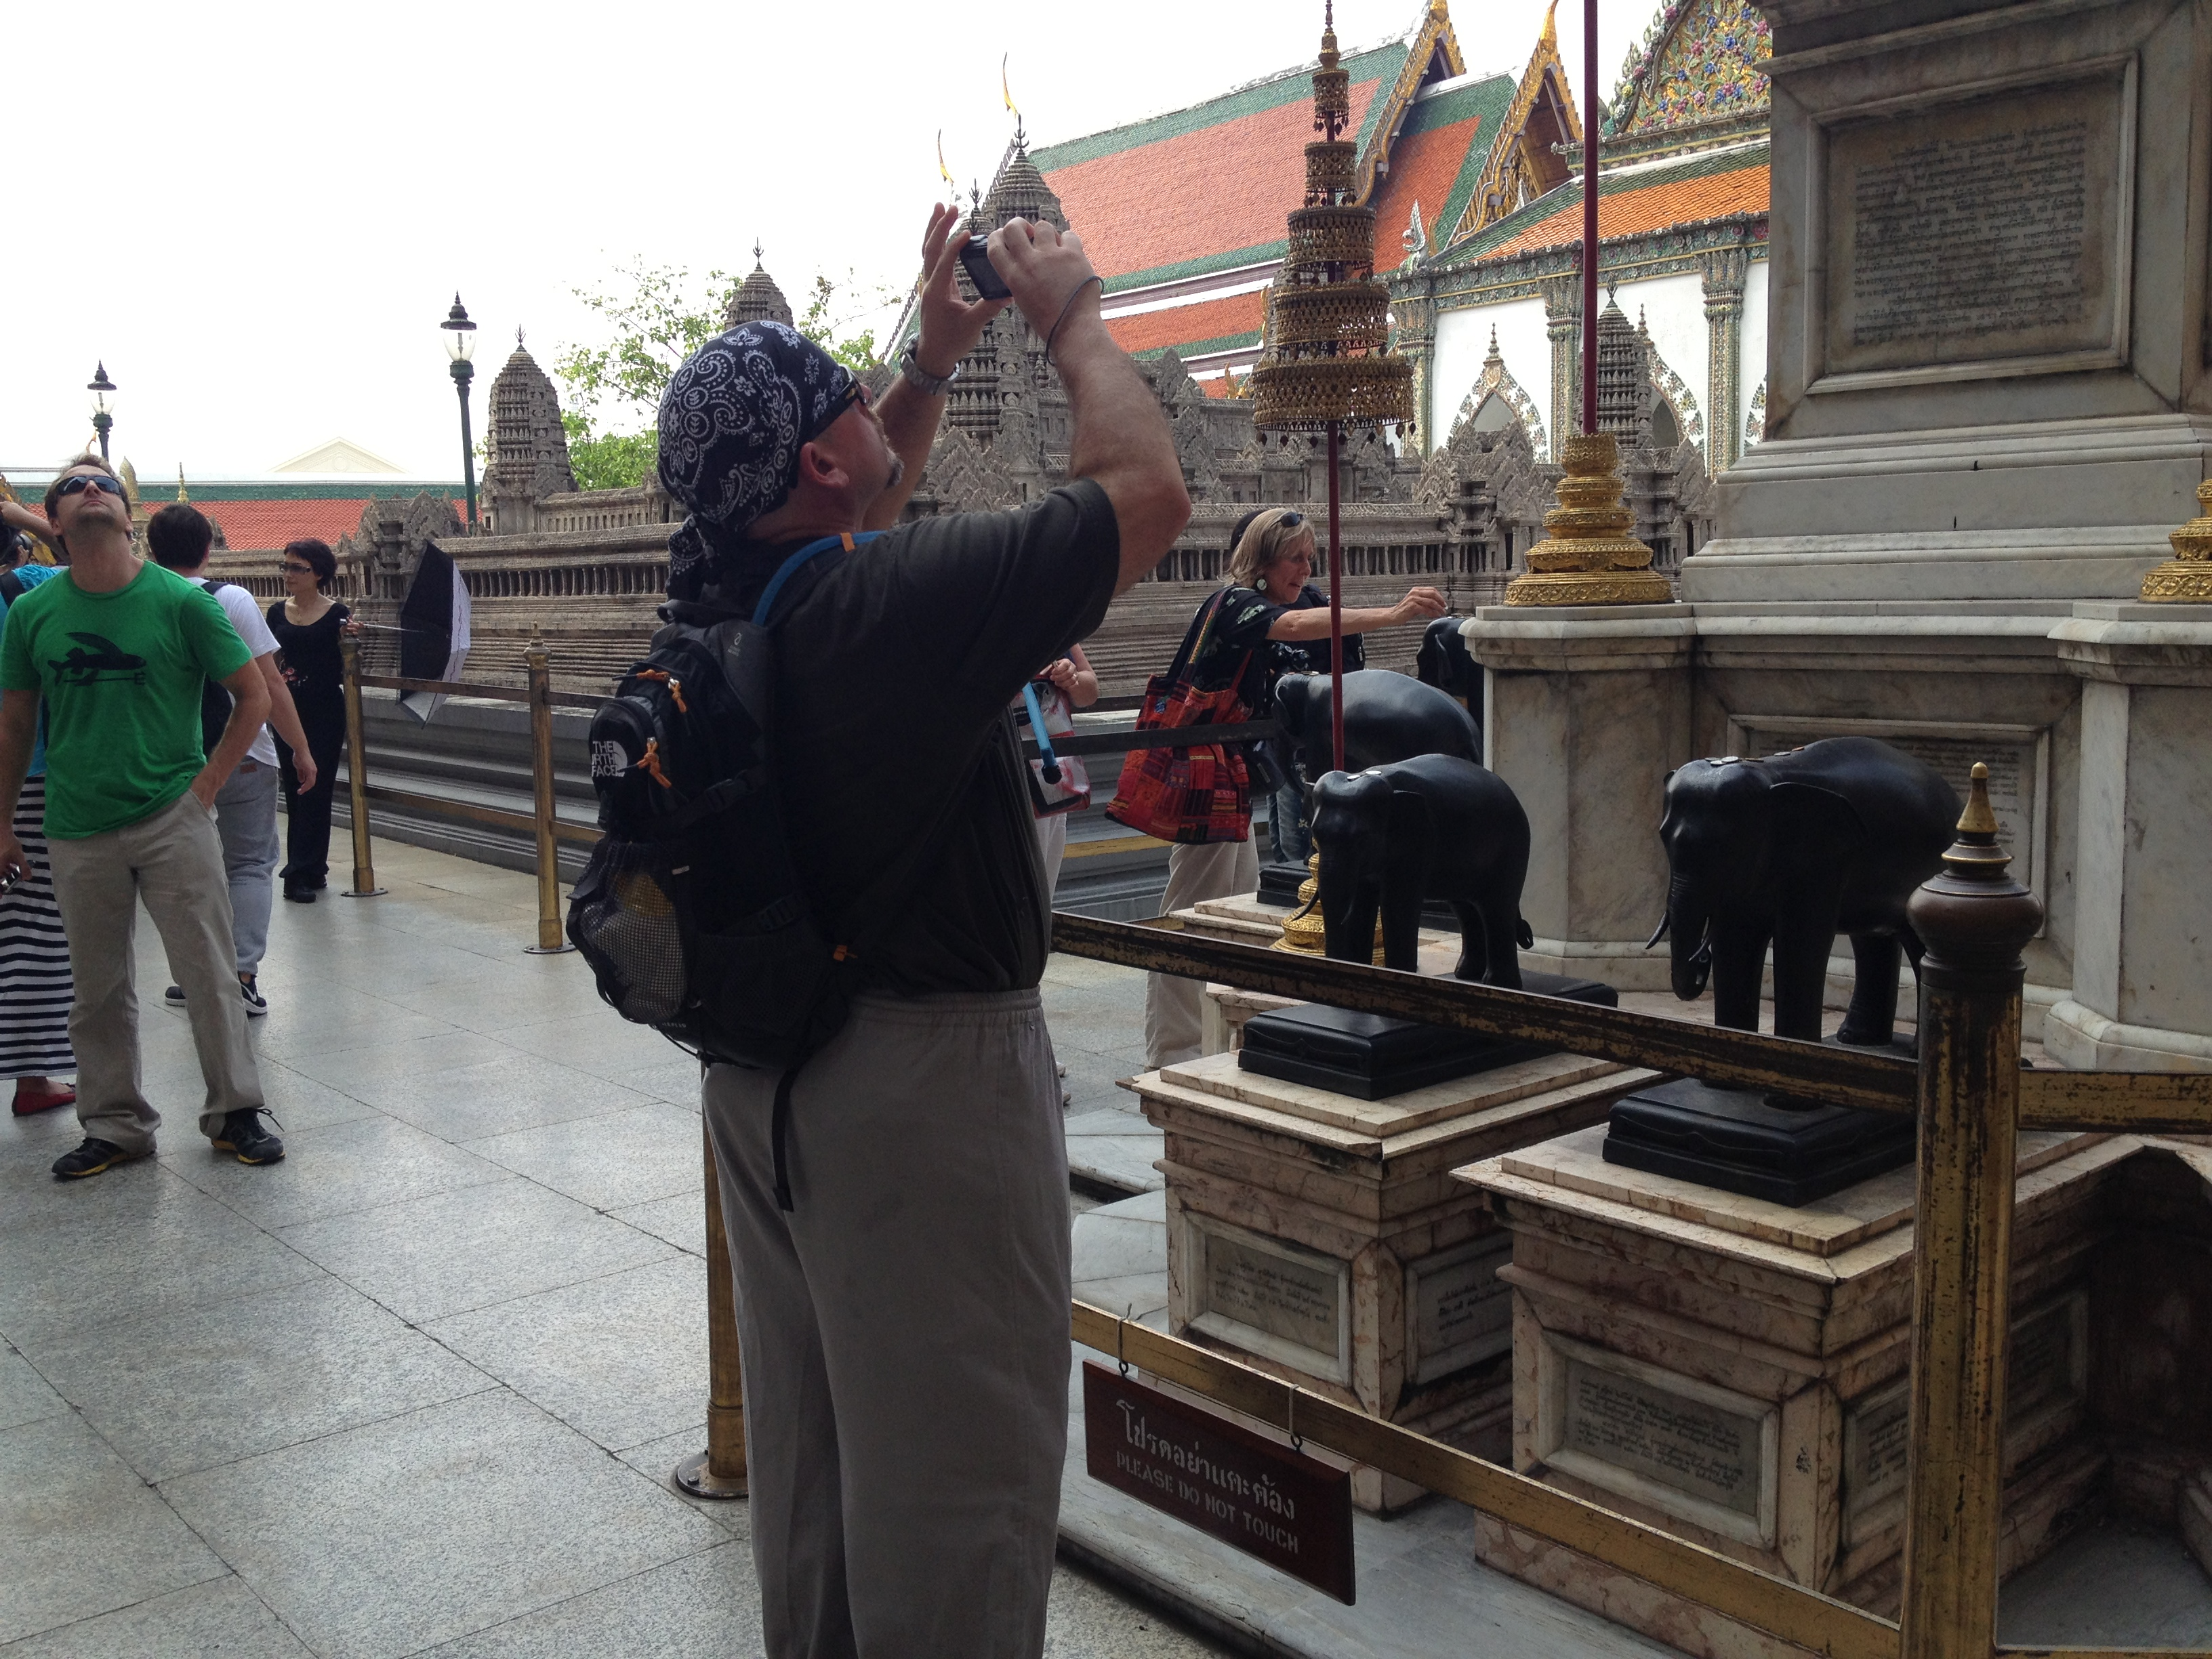 Grand Palace dress code - Michael's grandpa pants